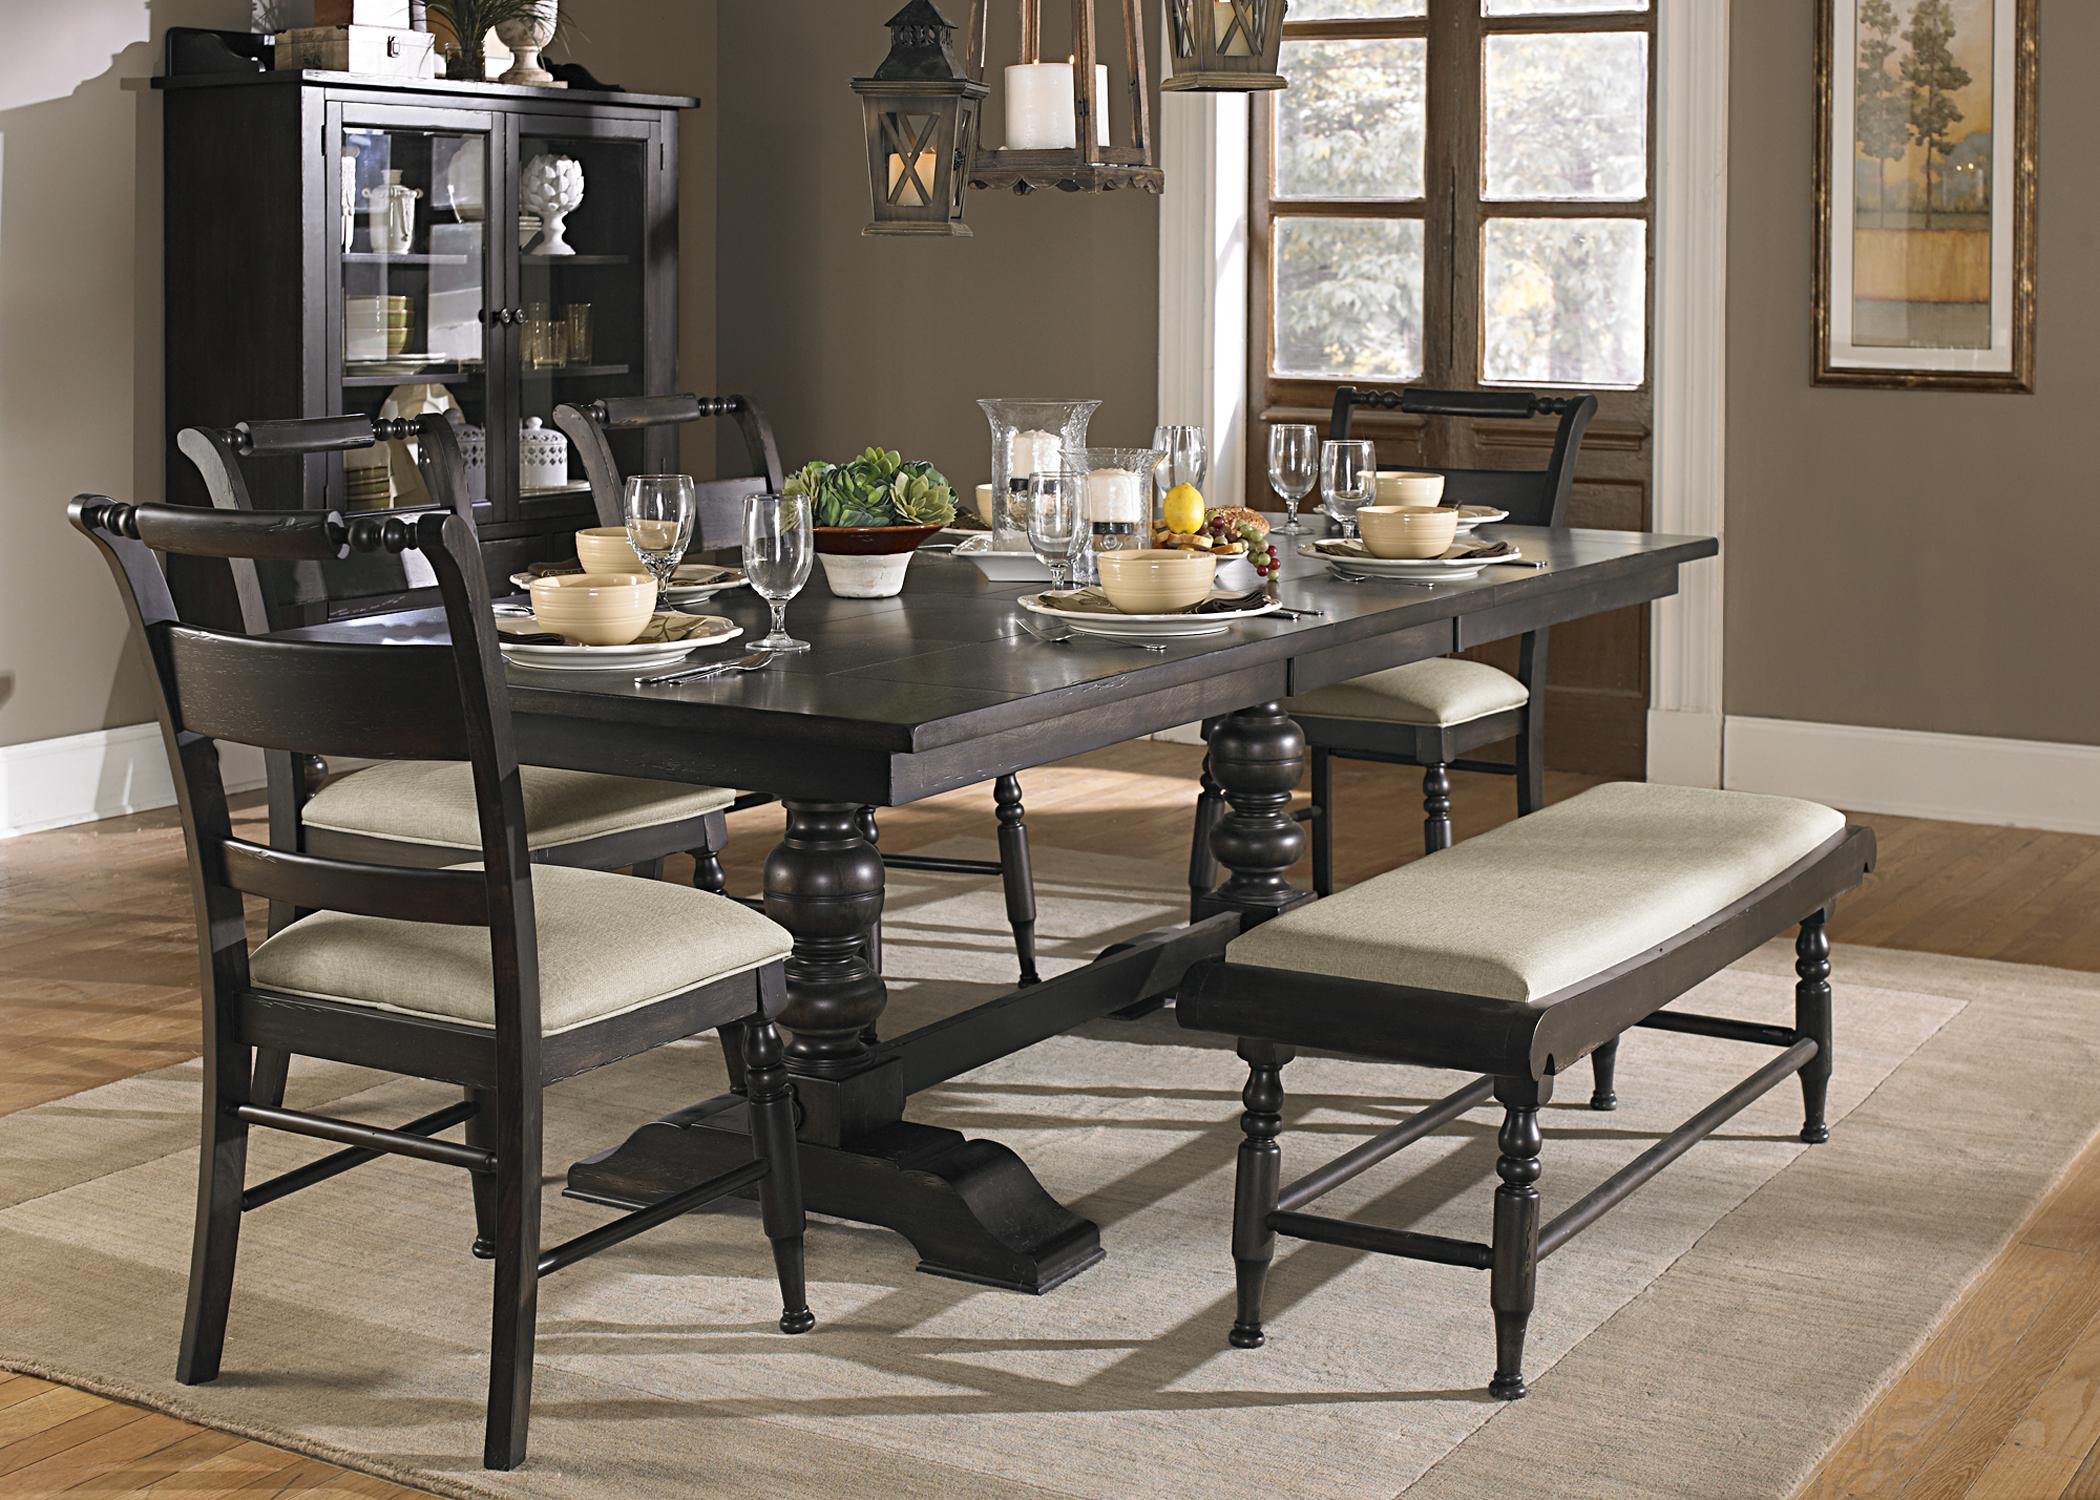 Liberty furniture whitney 6 piece trestle table set with Living room bedroom dinettes oh yeah